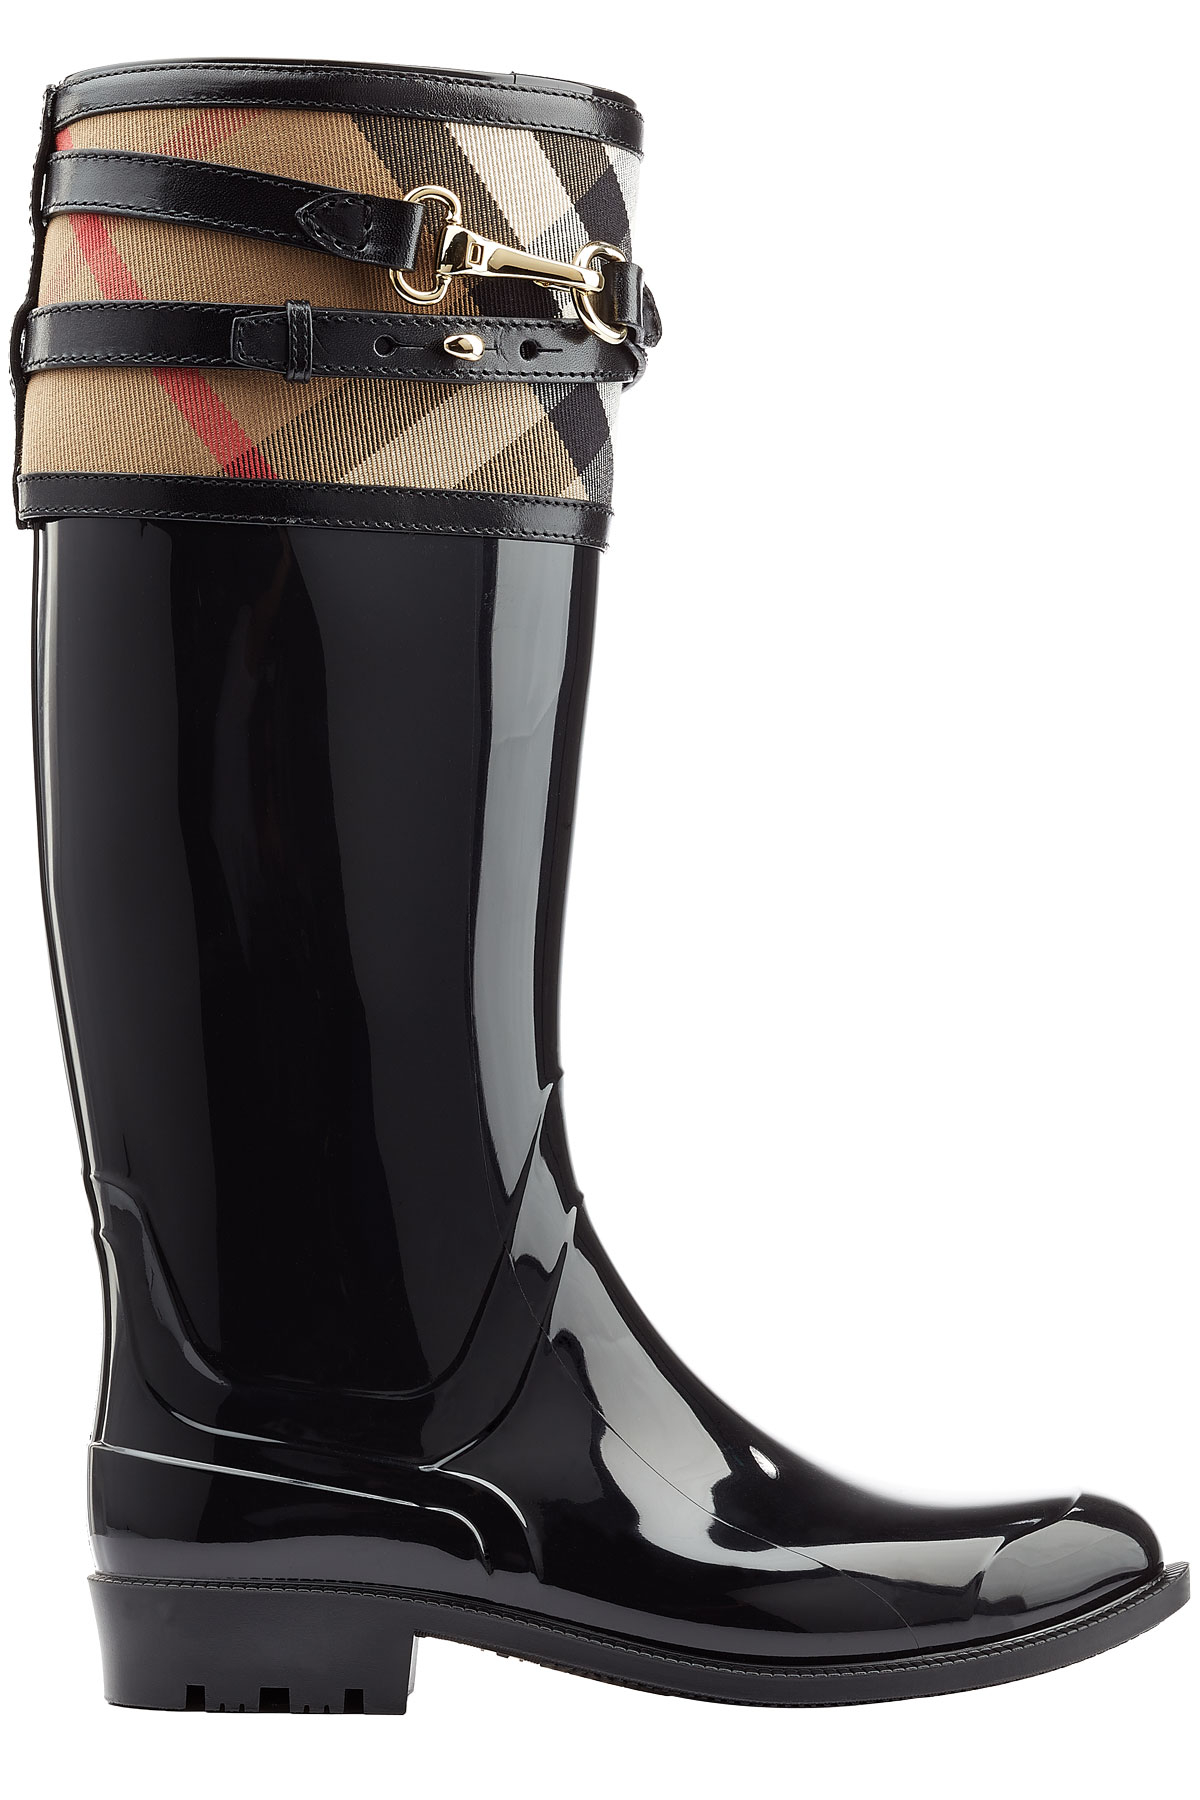 Burberry Rubber Boots With Check Trim Black In Black Lyst